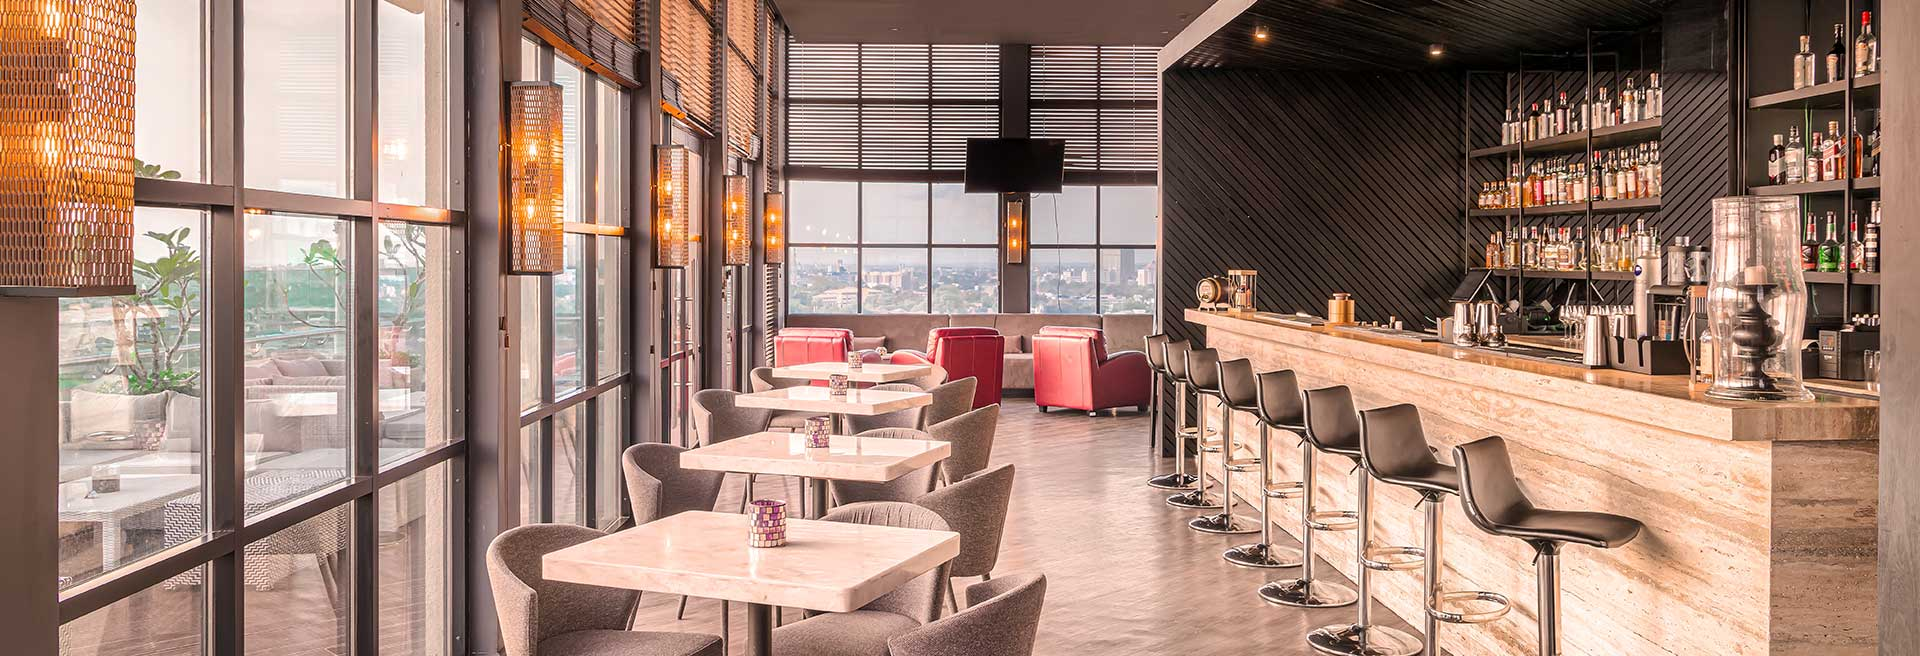 indoor dining with a view of the city